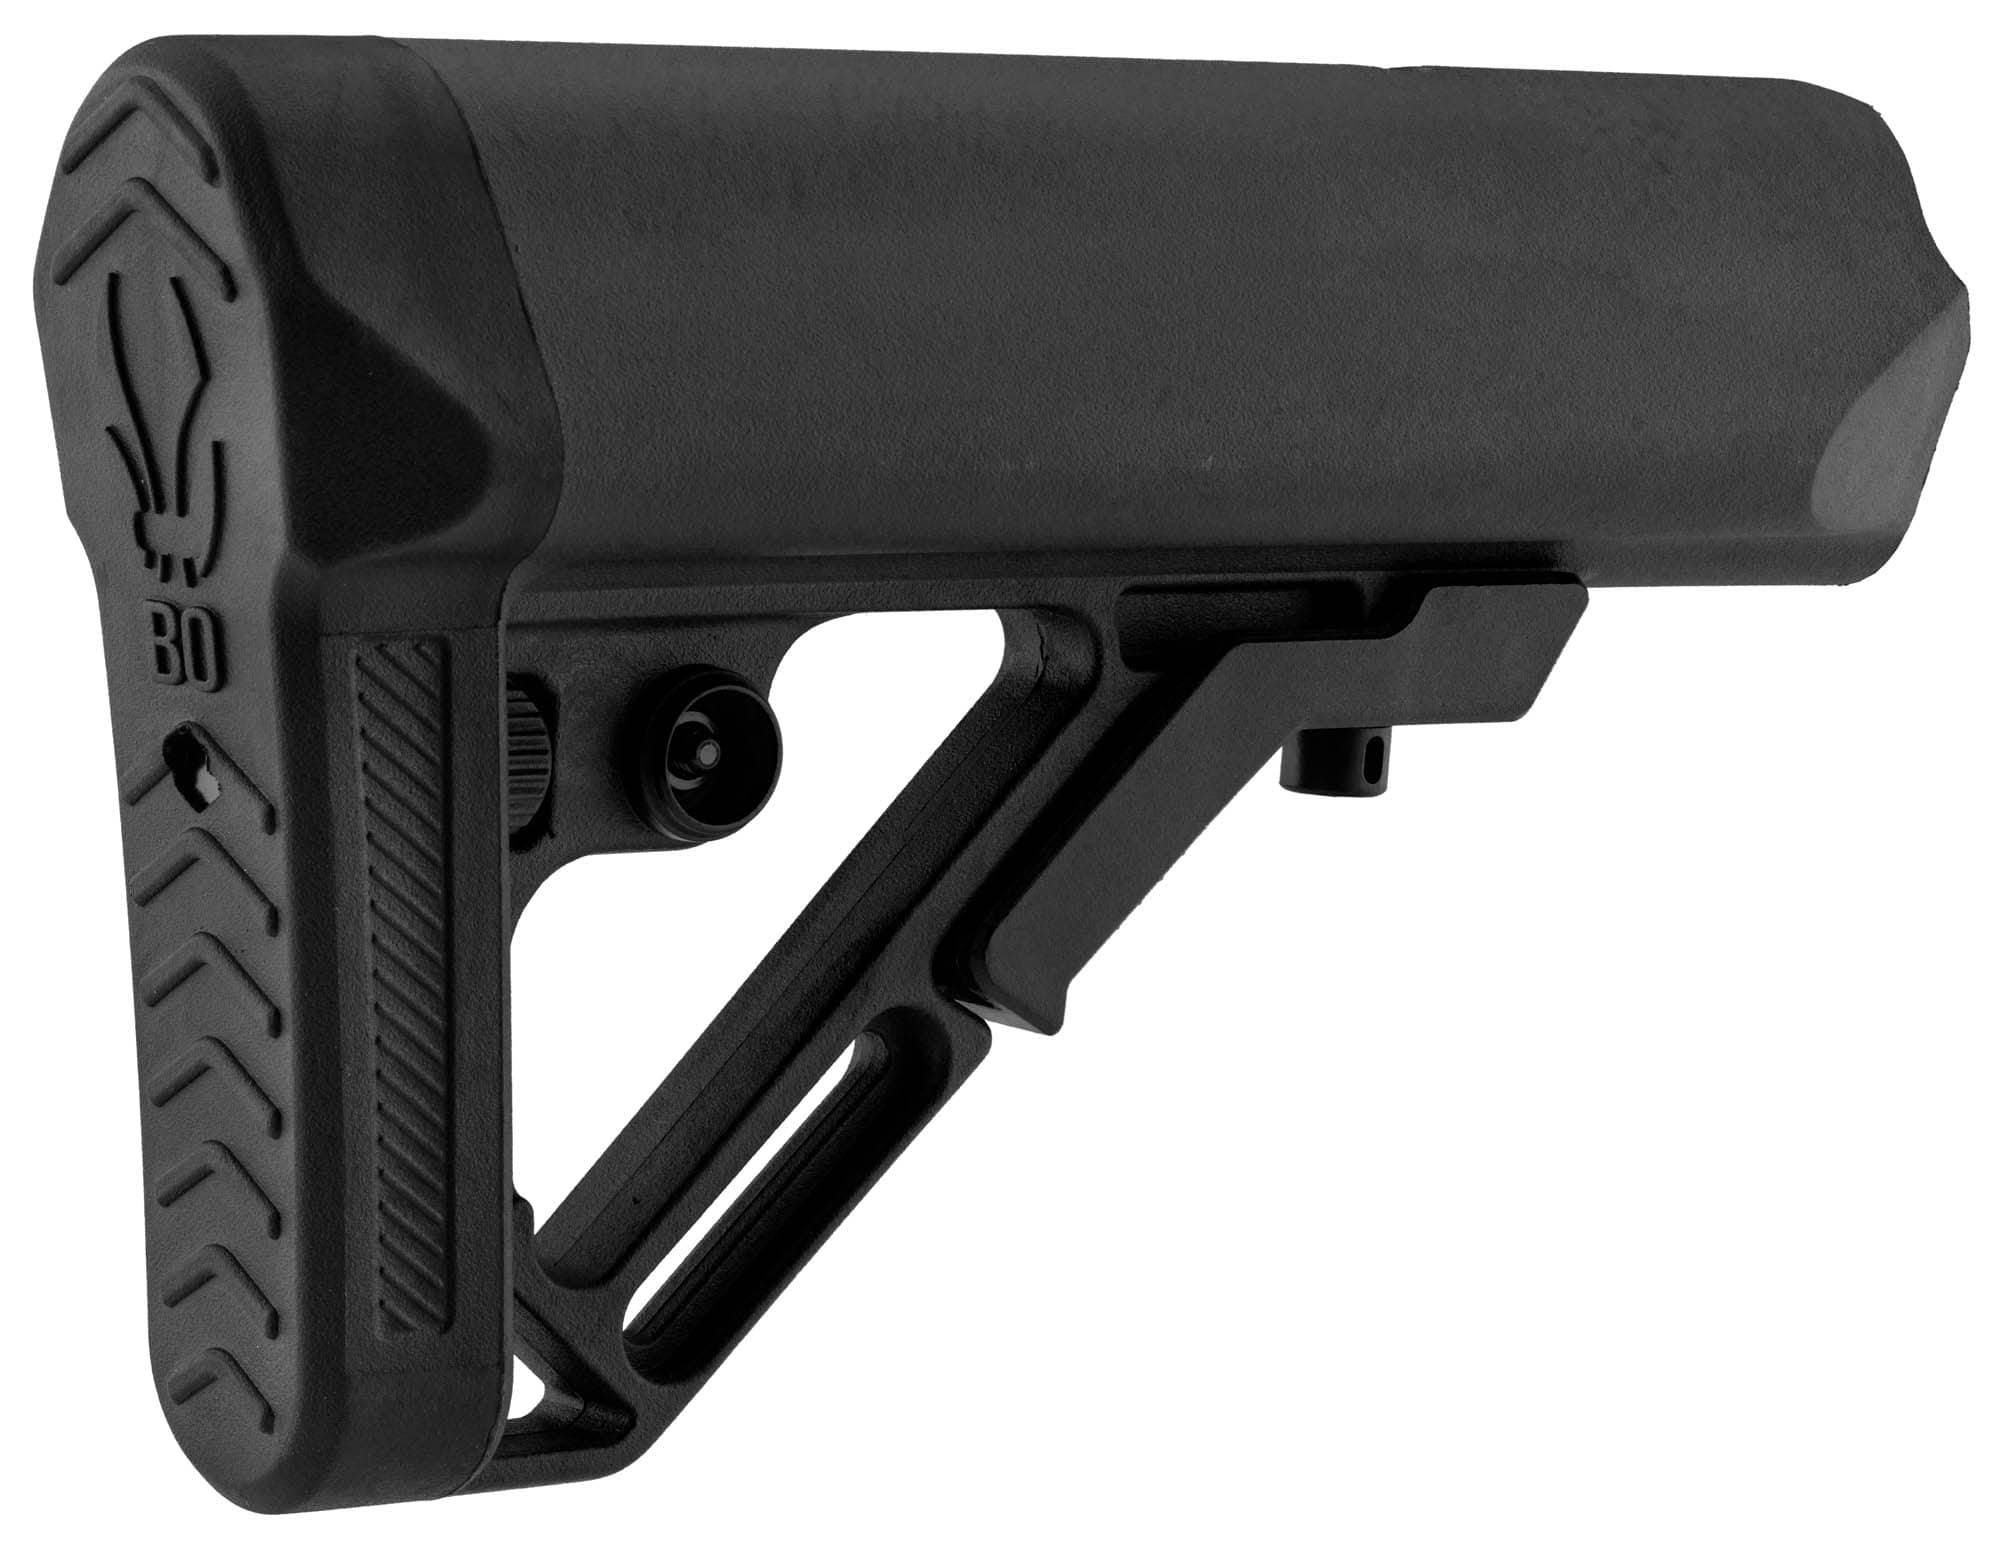 A67045-2-Crosse RS PRO Black airsoft - BO Manufacture - A67045